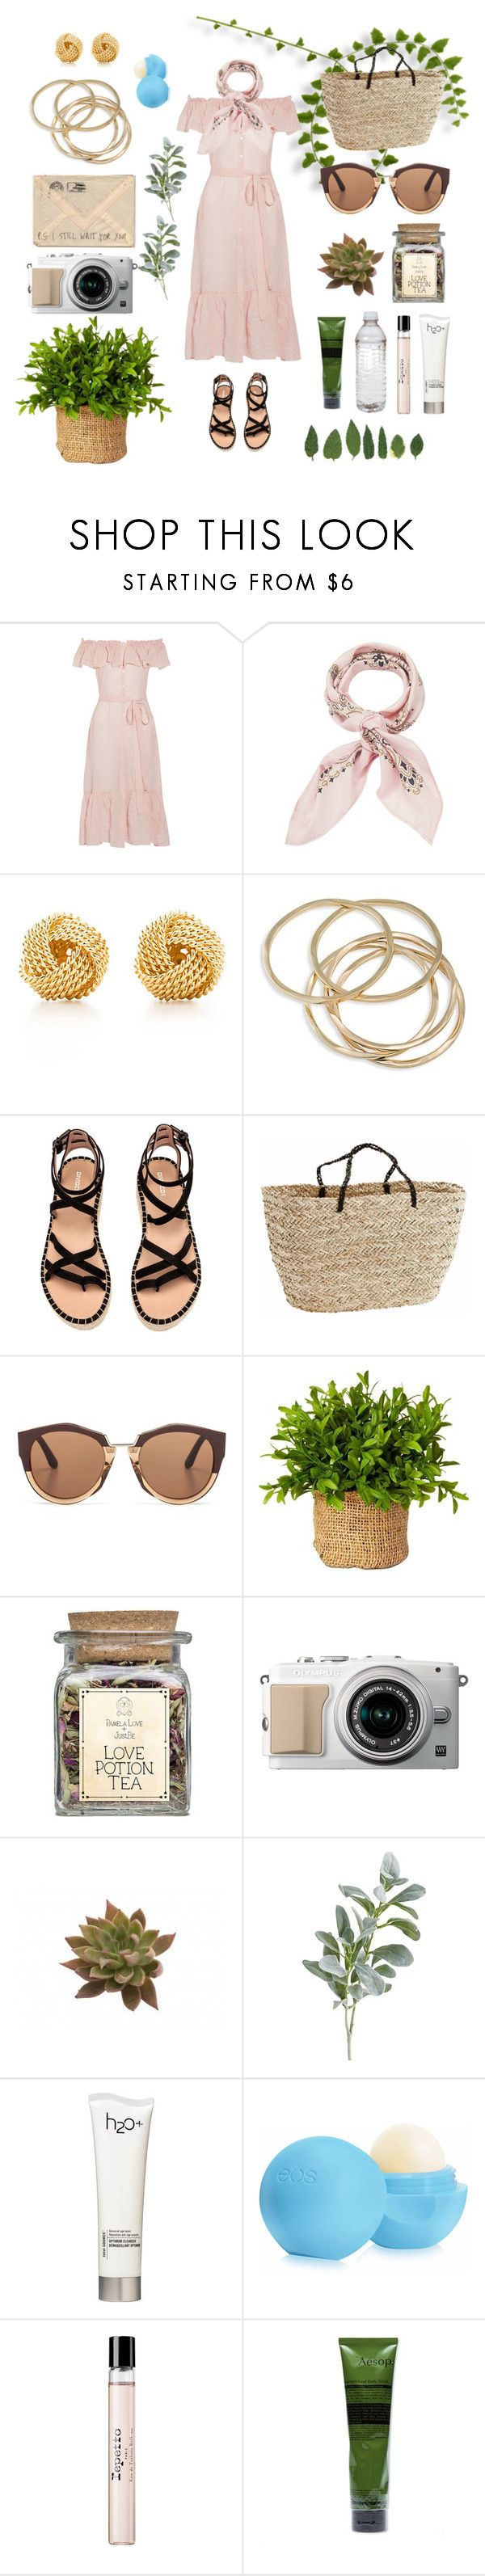 """""""Día de campo 👩🏽🌾"""" by lissavasquez16 ❤ liked on Polyvore featuring Lisa Marie Fernandez, Manipuri, Tiffany & Co., ABS by Allen Schwartz, Marni, Pier 1 Imports, H2O+, Eos, Repetto and Aesop"""